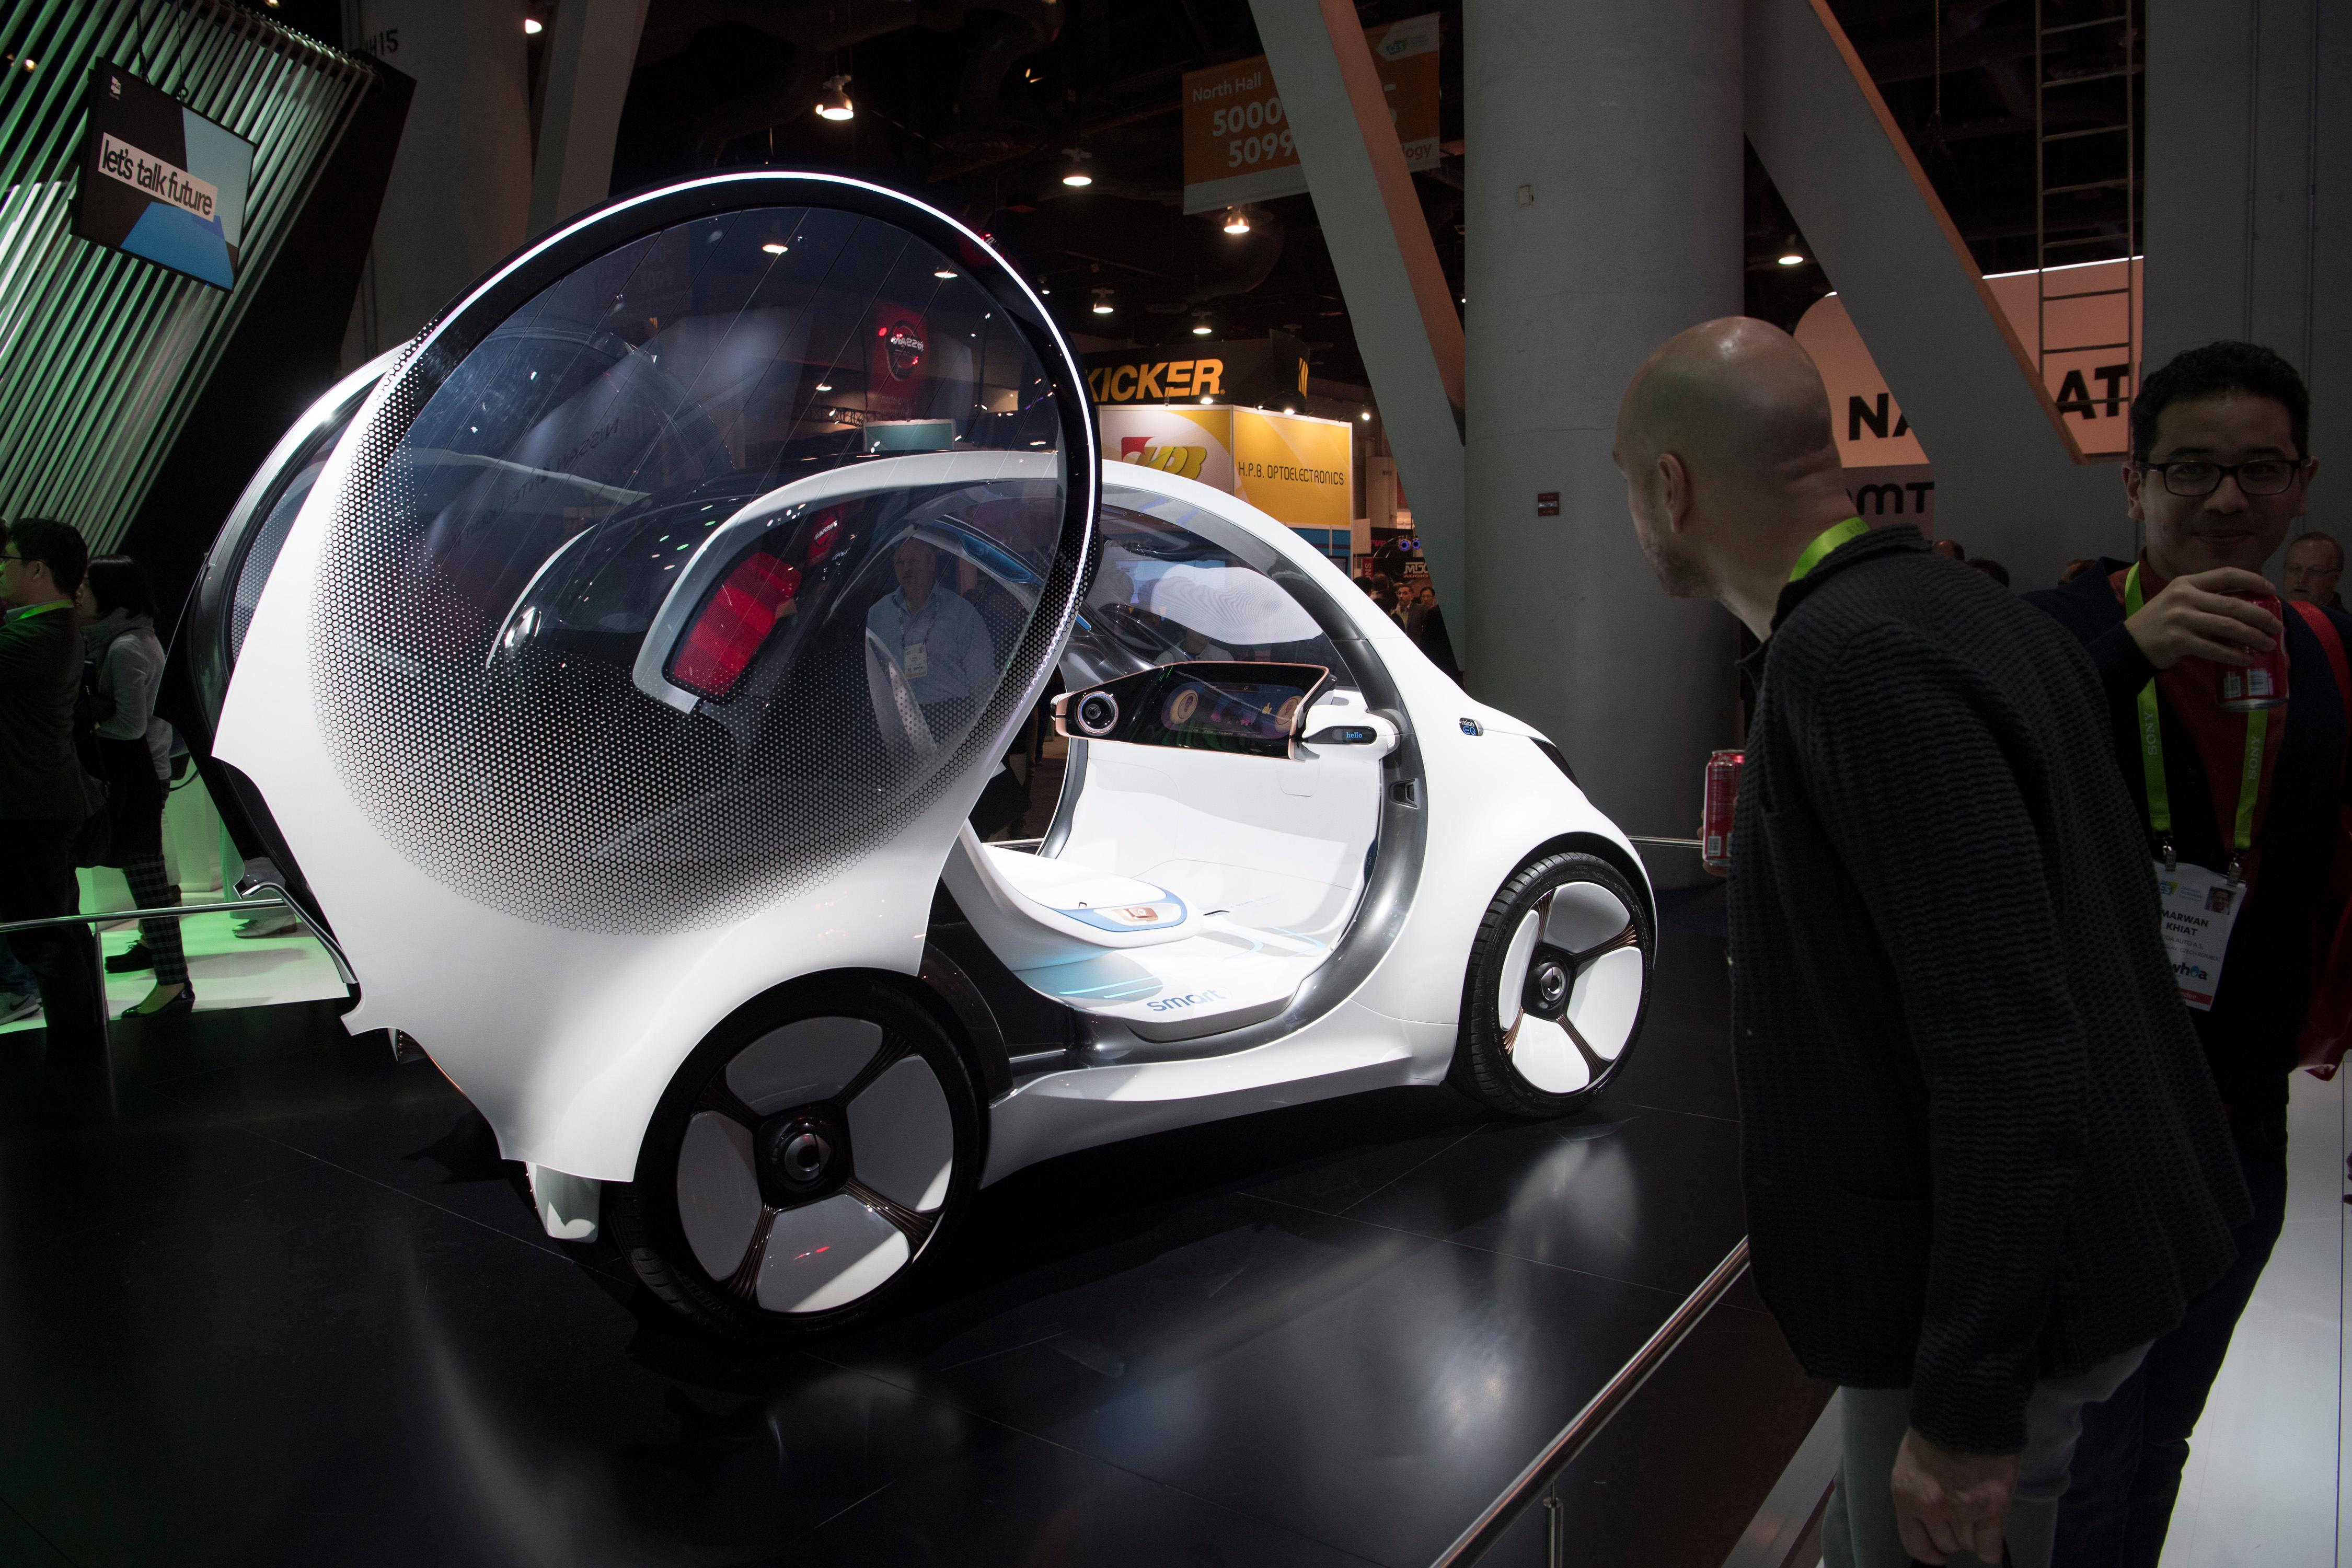 An electric, autonomous Mercedes smart car concept vehicle is seen during the second day of CES Wednesday, January 10, 2018, at the Las Vegas Convention Center. CREDIT: Sam Morris/Las Vegas News Bureau